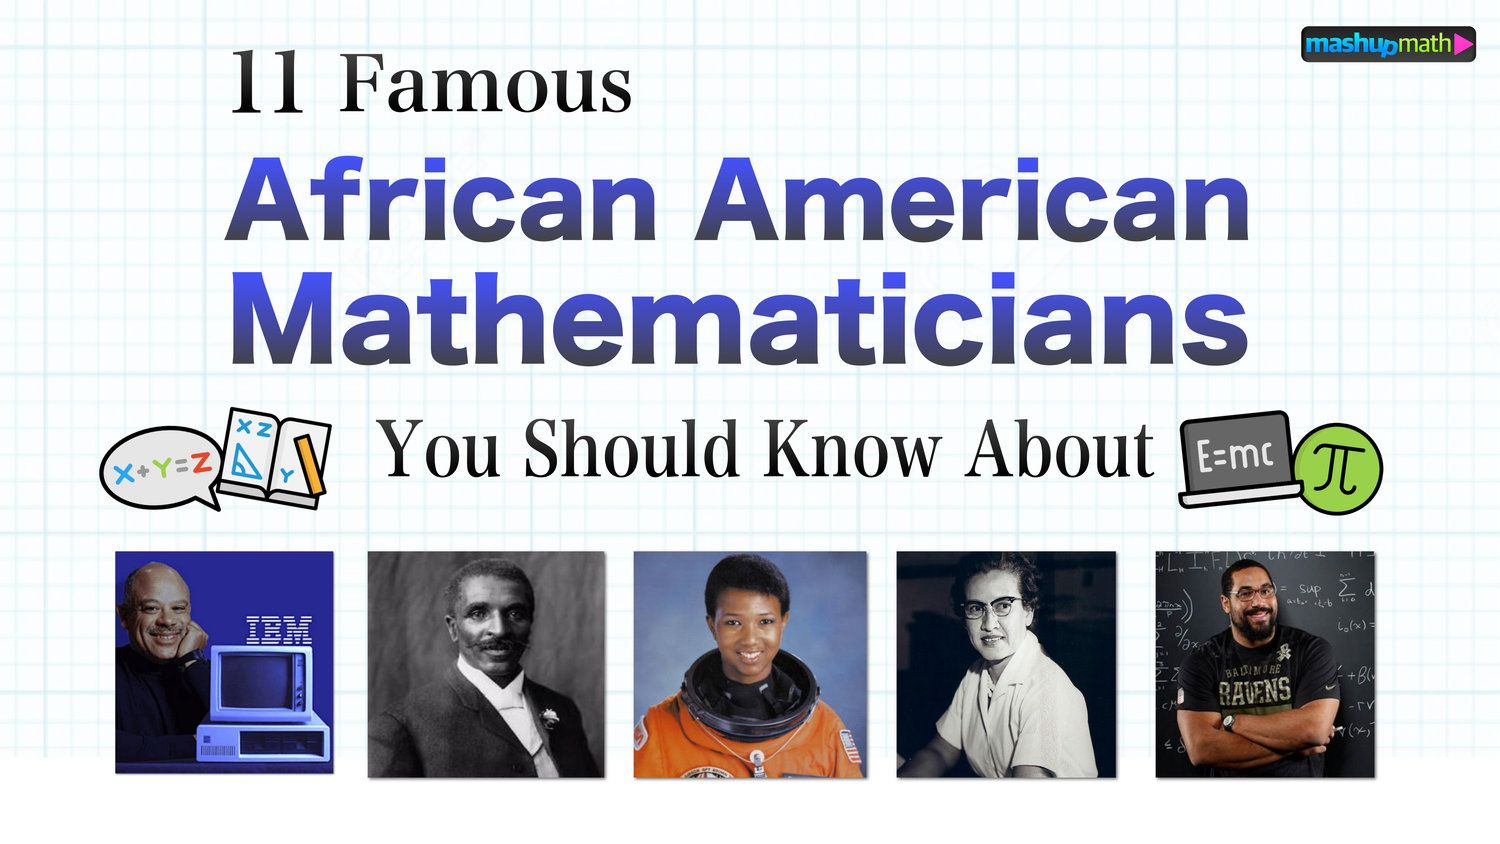 11 Famous African American Mathematicians You Should Know